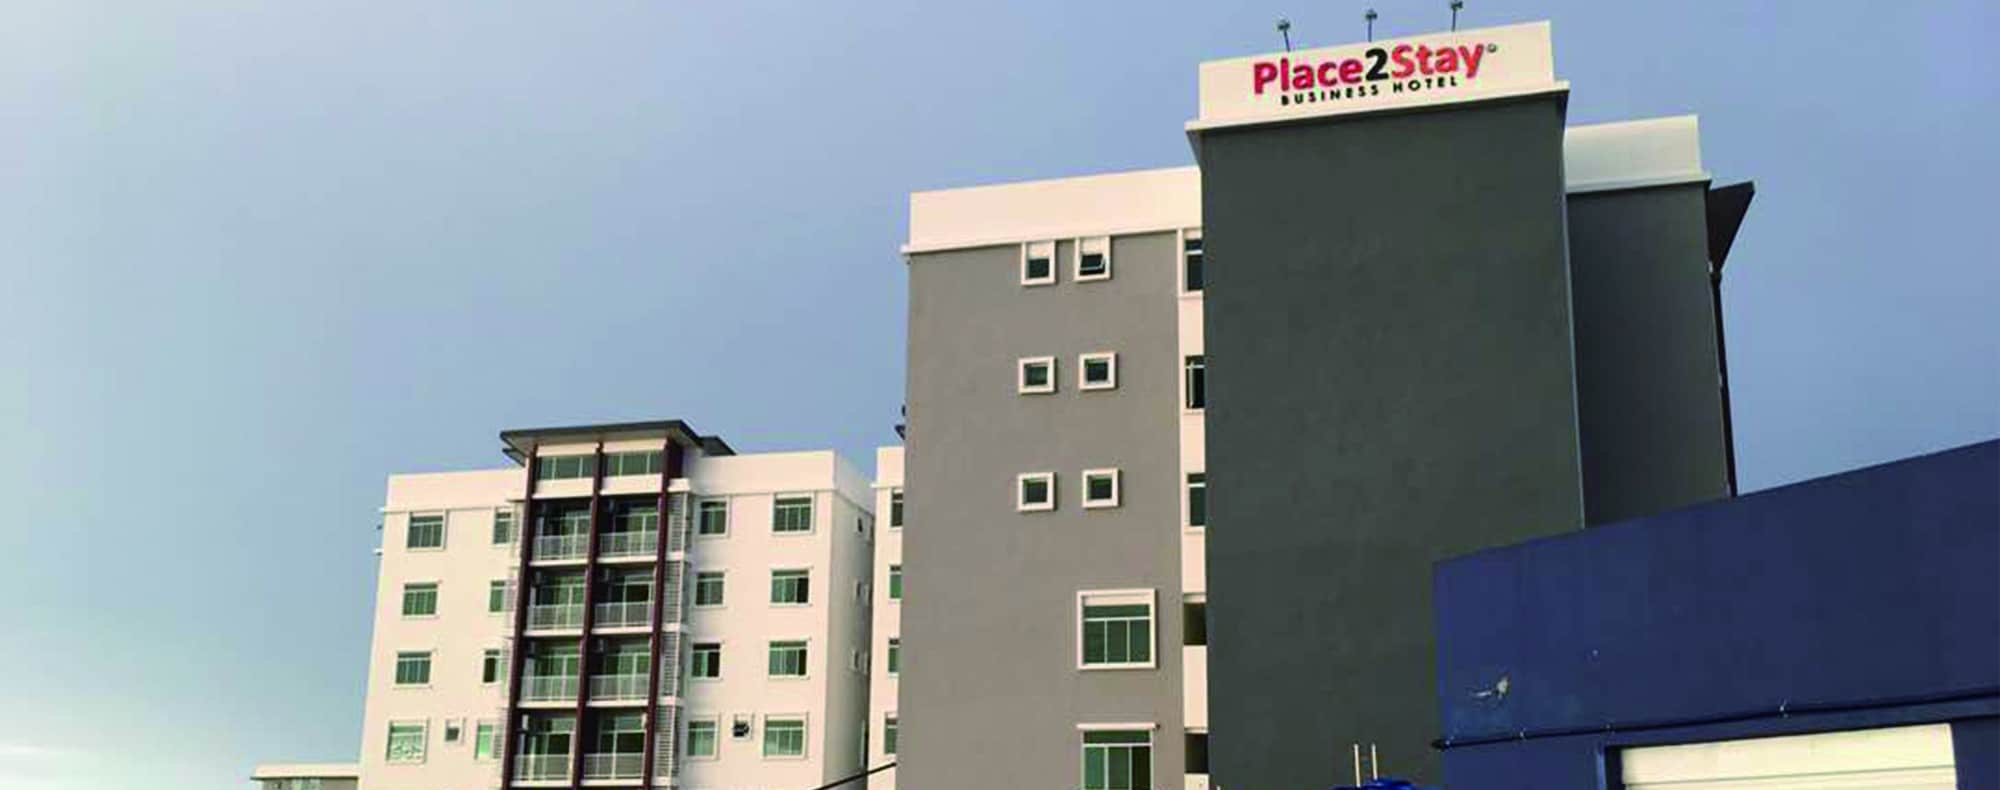 Place2Stay Business Hotel @ Emart Riam, Miri